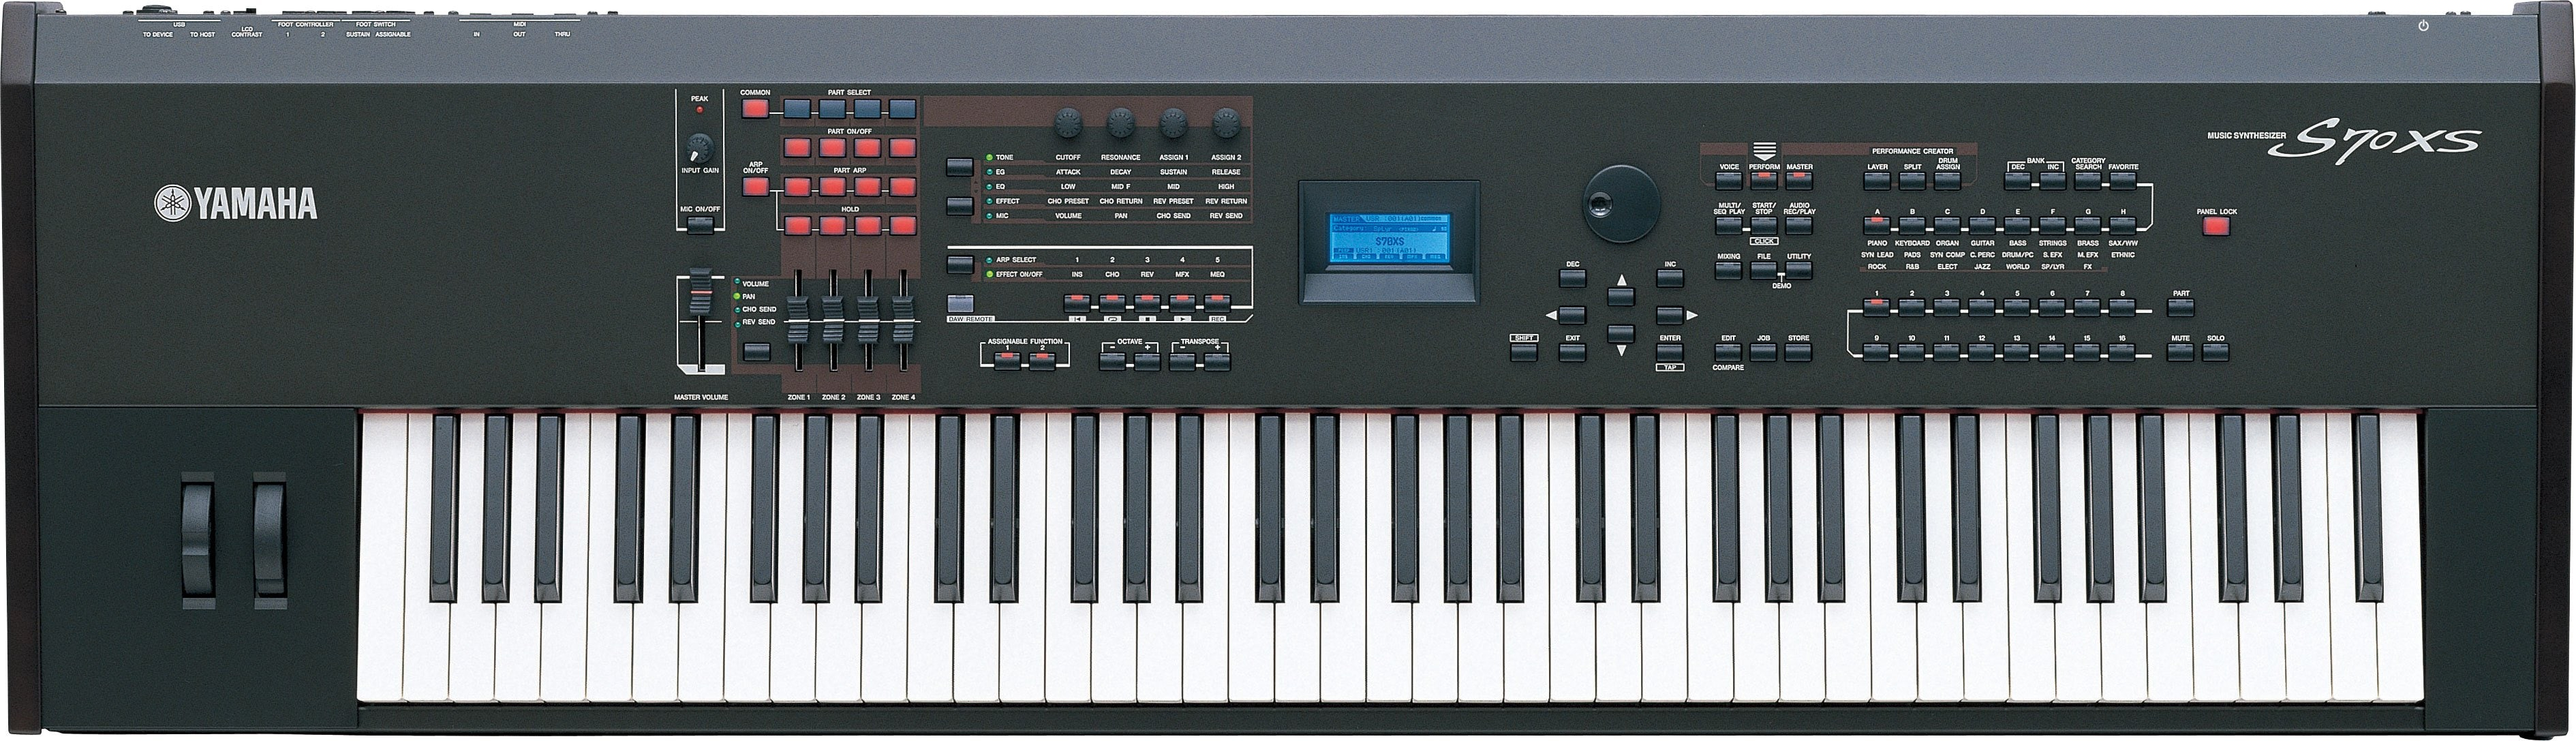 S90 XS/S70 XS - Overview - Synthesizers - Synthesizers